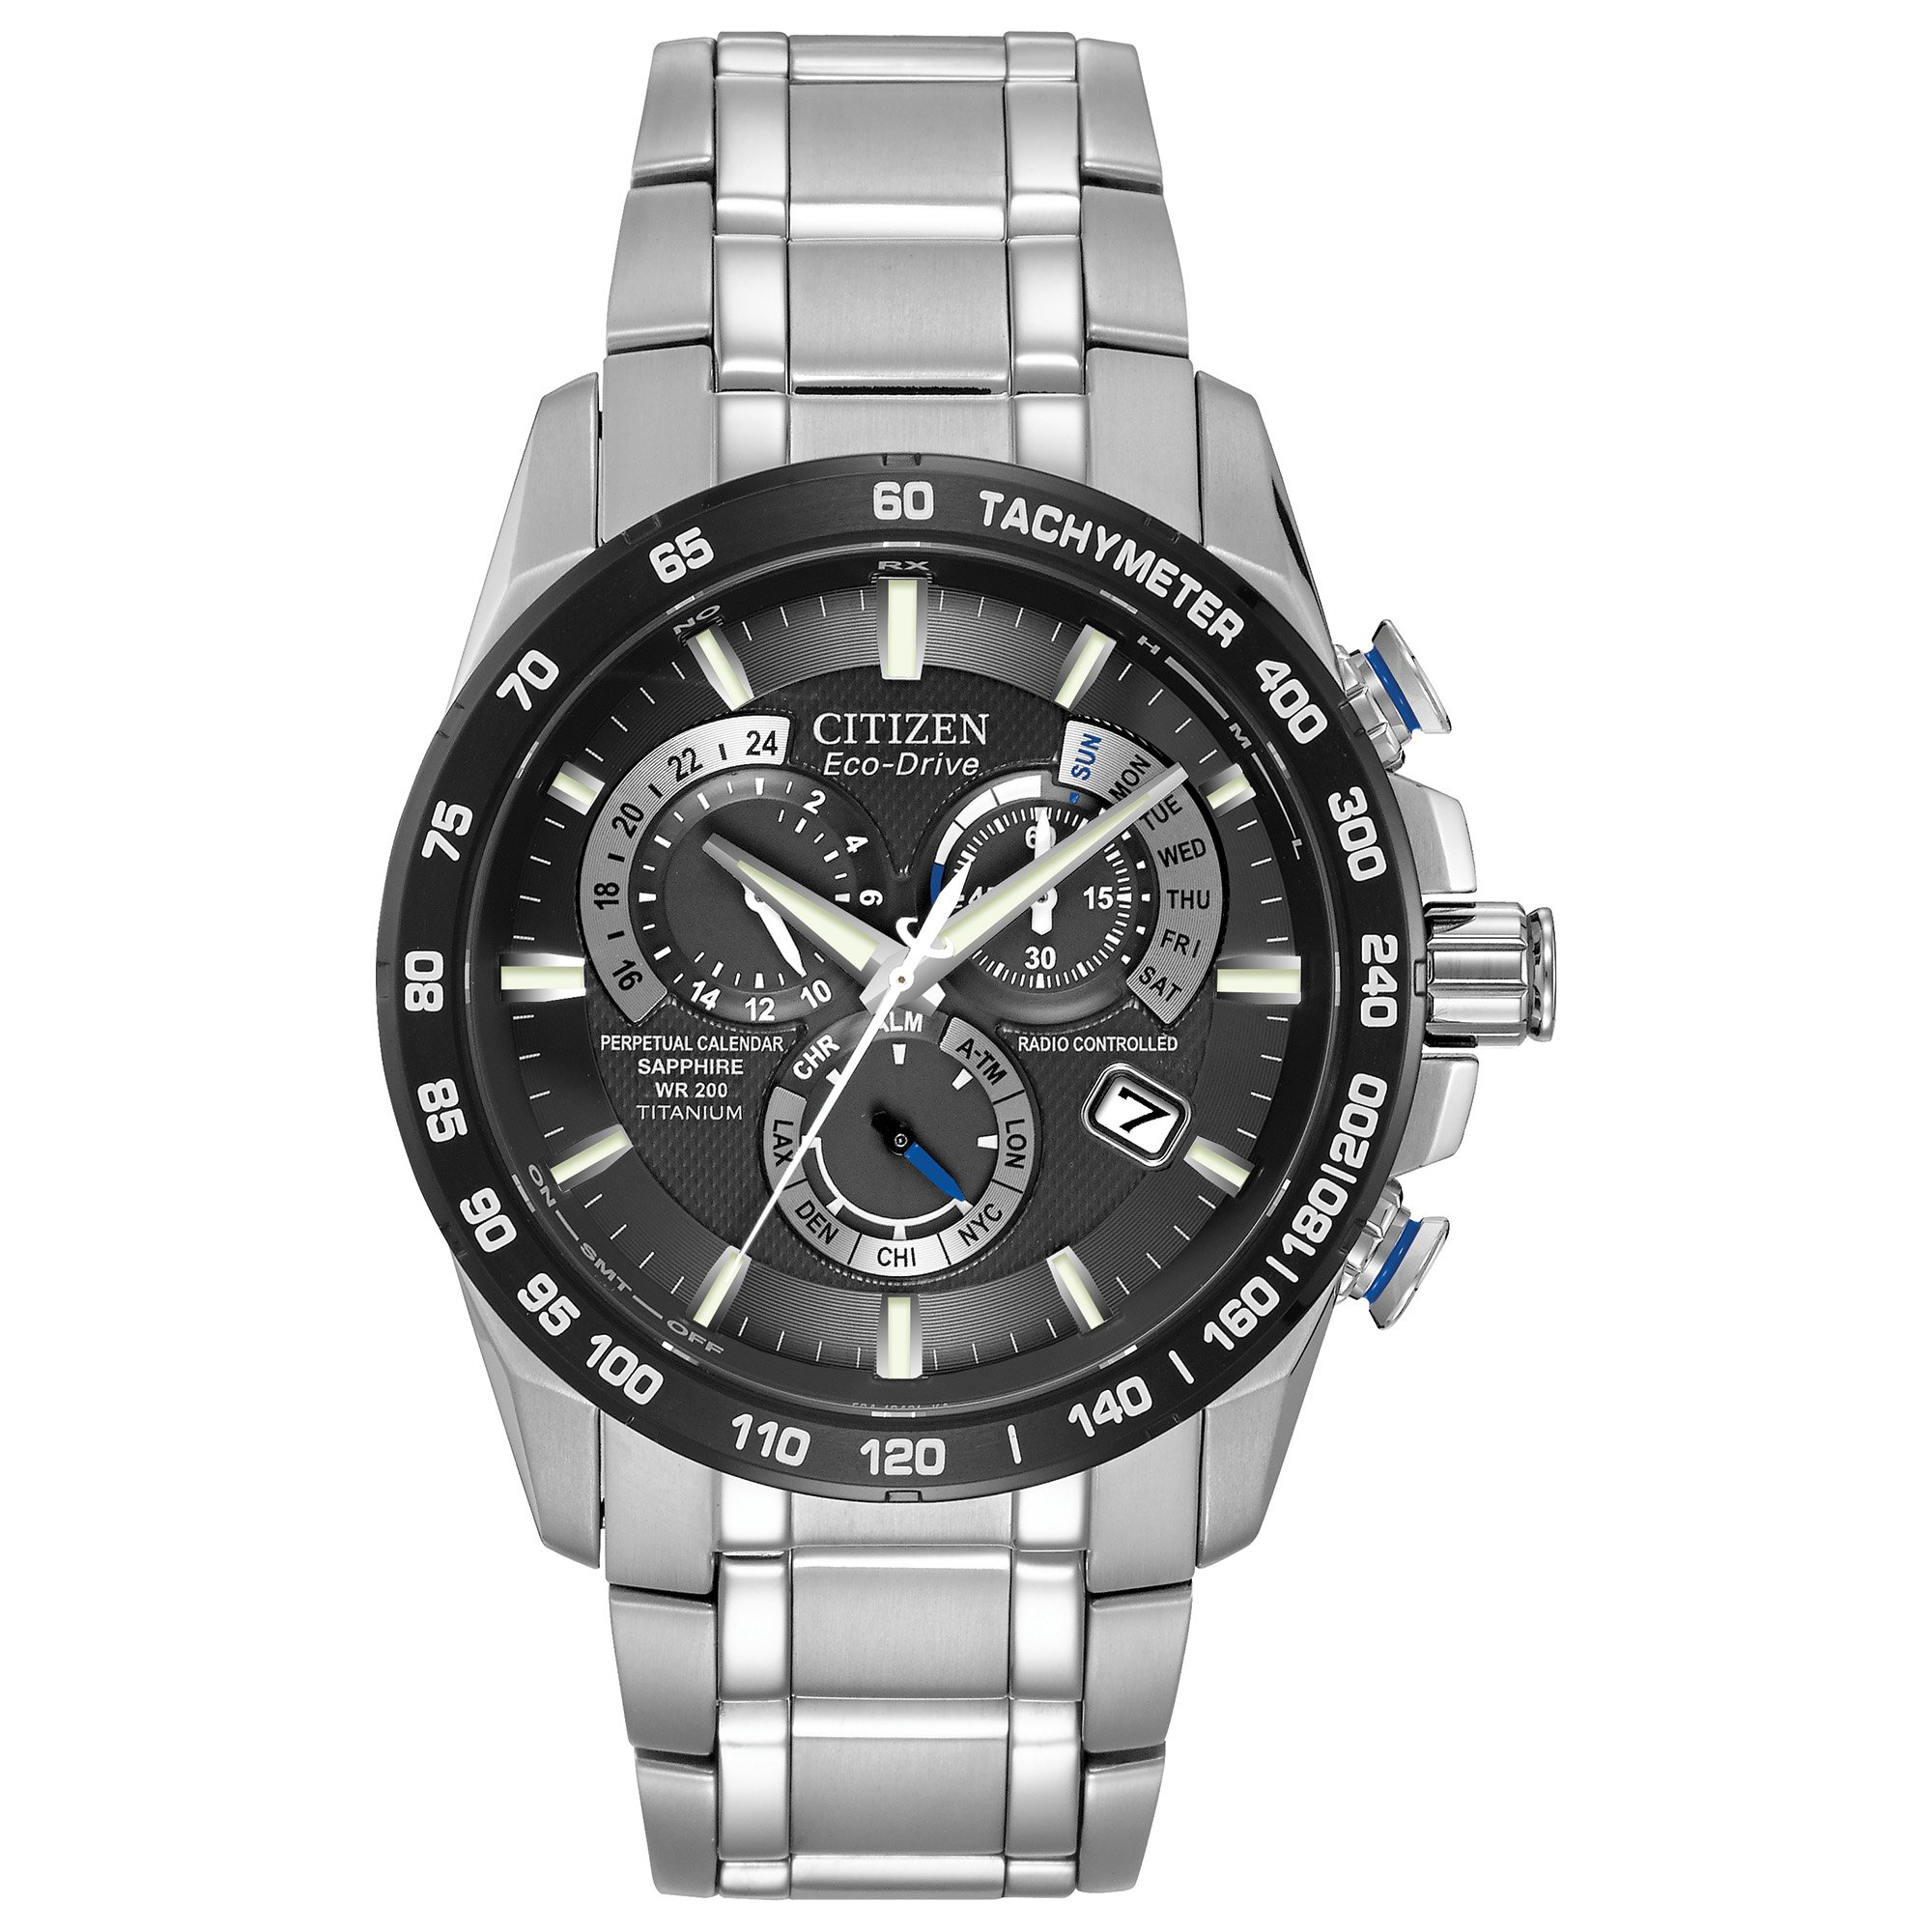 Citizen Men's Eco-Drive Titanium Perpetual Chrono Atomic Timekeeping Watch with Date,  AT4010-50E by Citizen